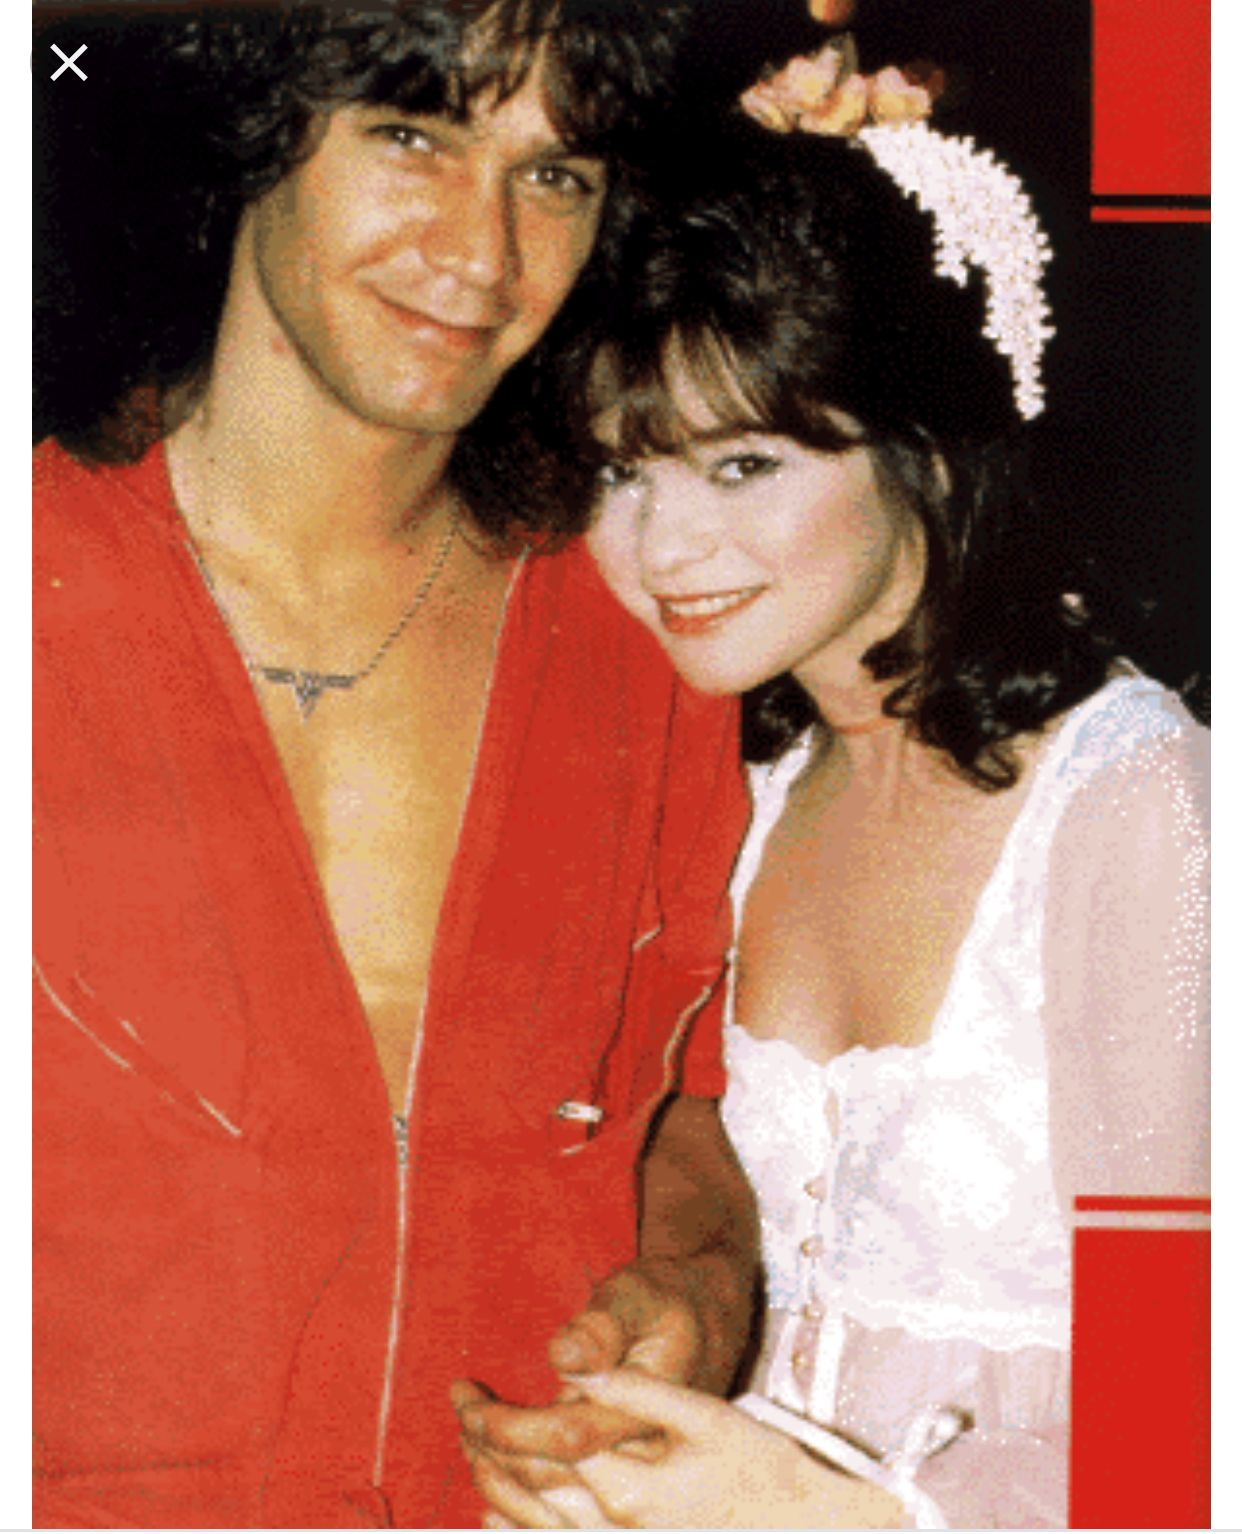 Pin By Irad On Memories Eddie Van Halen Van Halen Hollywood Couples